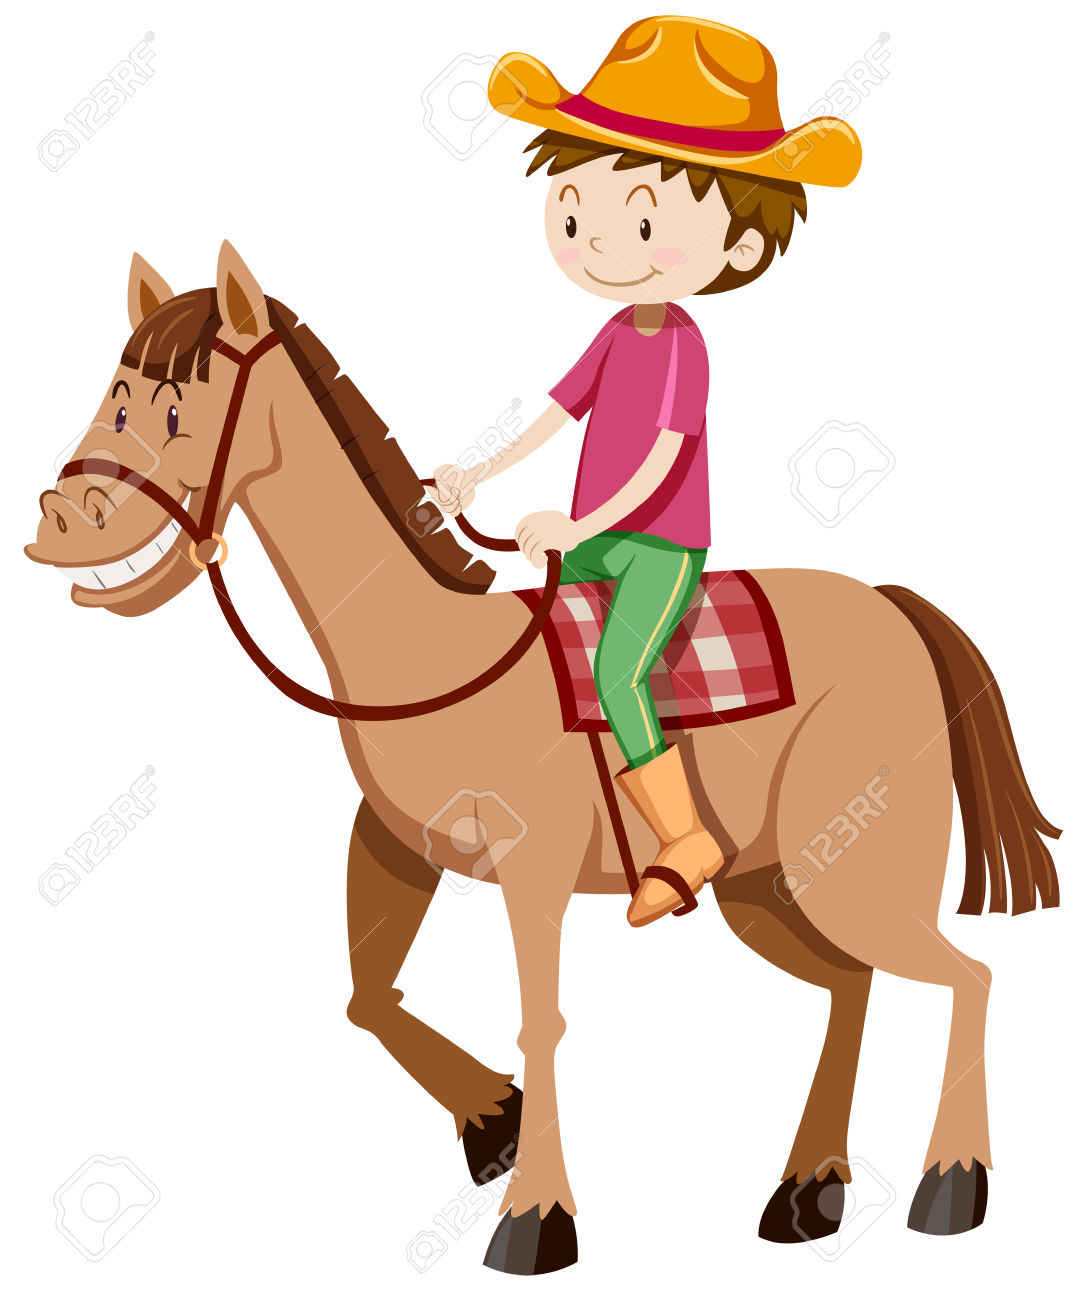 Horse Riding Clipart.